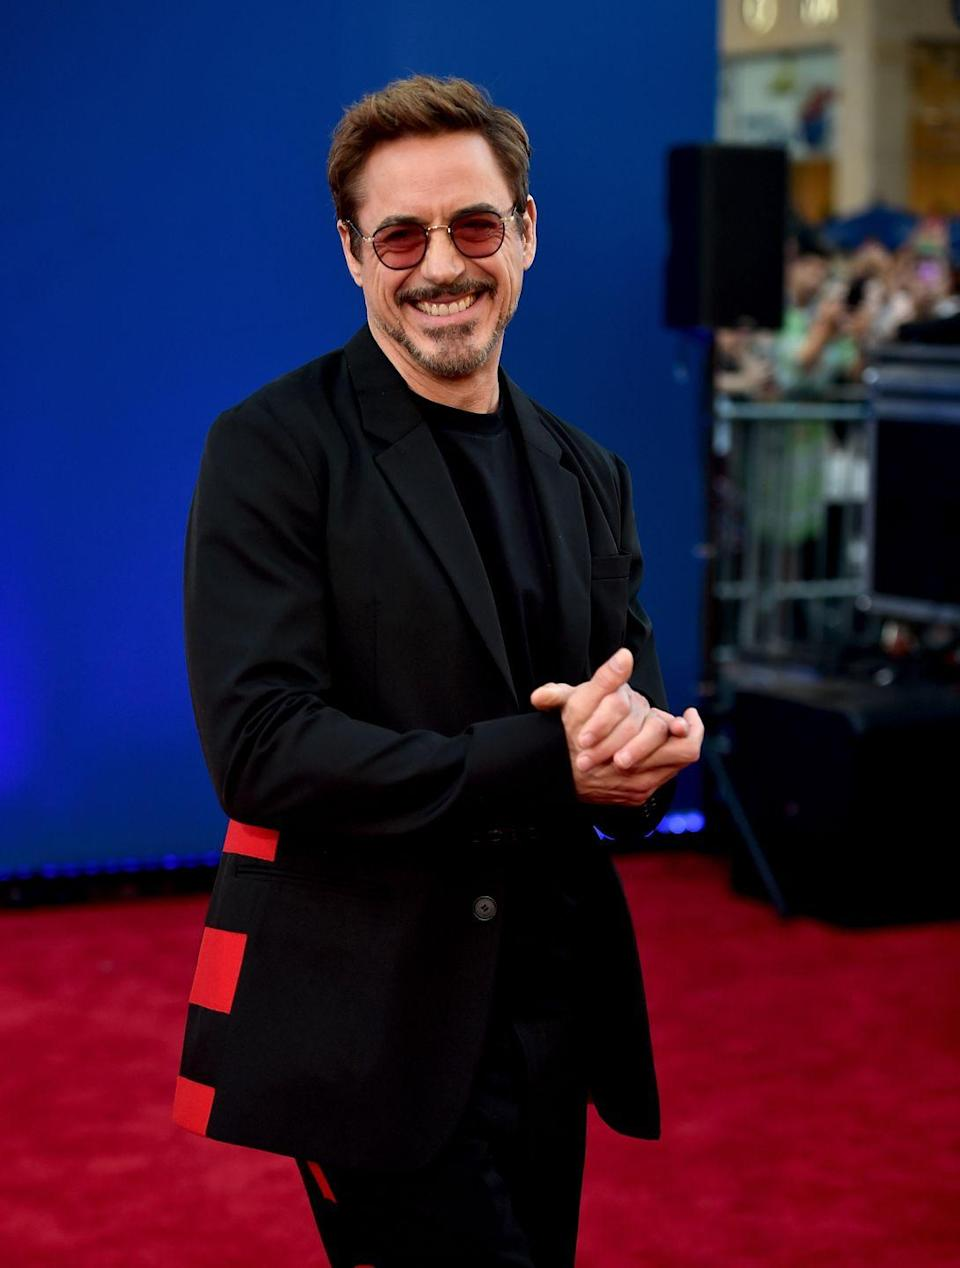 """<p>In 2008, Robert was cast as the lead in <em>Iron Man, </em>which has led to many Marvel movies over the last decade. The following year, the actor appeared as the fast-talking Sherlock Holmes, for which he <a href=""""https://www.imdb.com/name/nm0000375/"""" rel=""""nofollow noopener"""" target=""""_blank"""" data-ylk=""""slk:won a Golden Globe"""" class=""""link rapid-noclick-resp"""">won a Golden Globe</a>.</p>"""